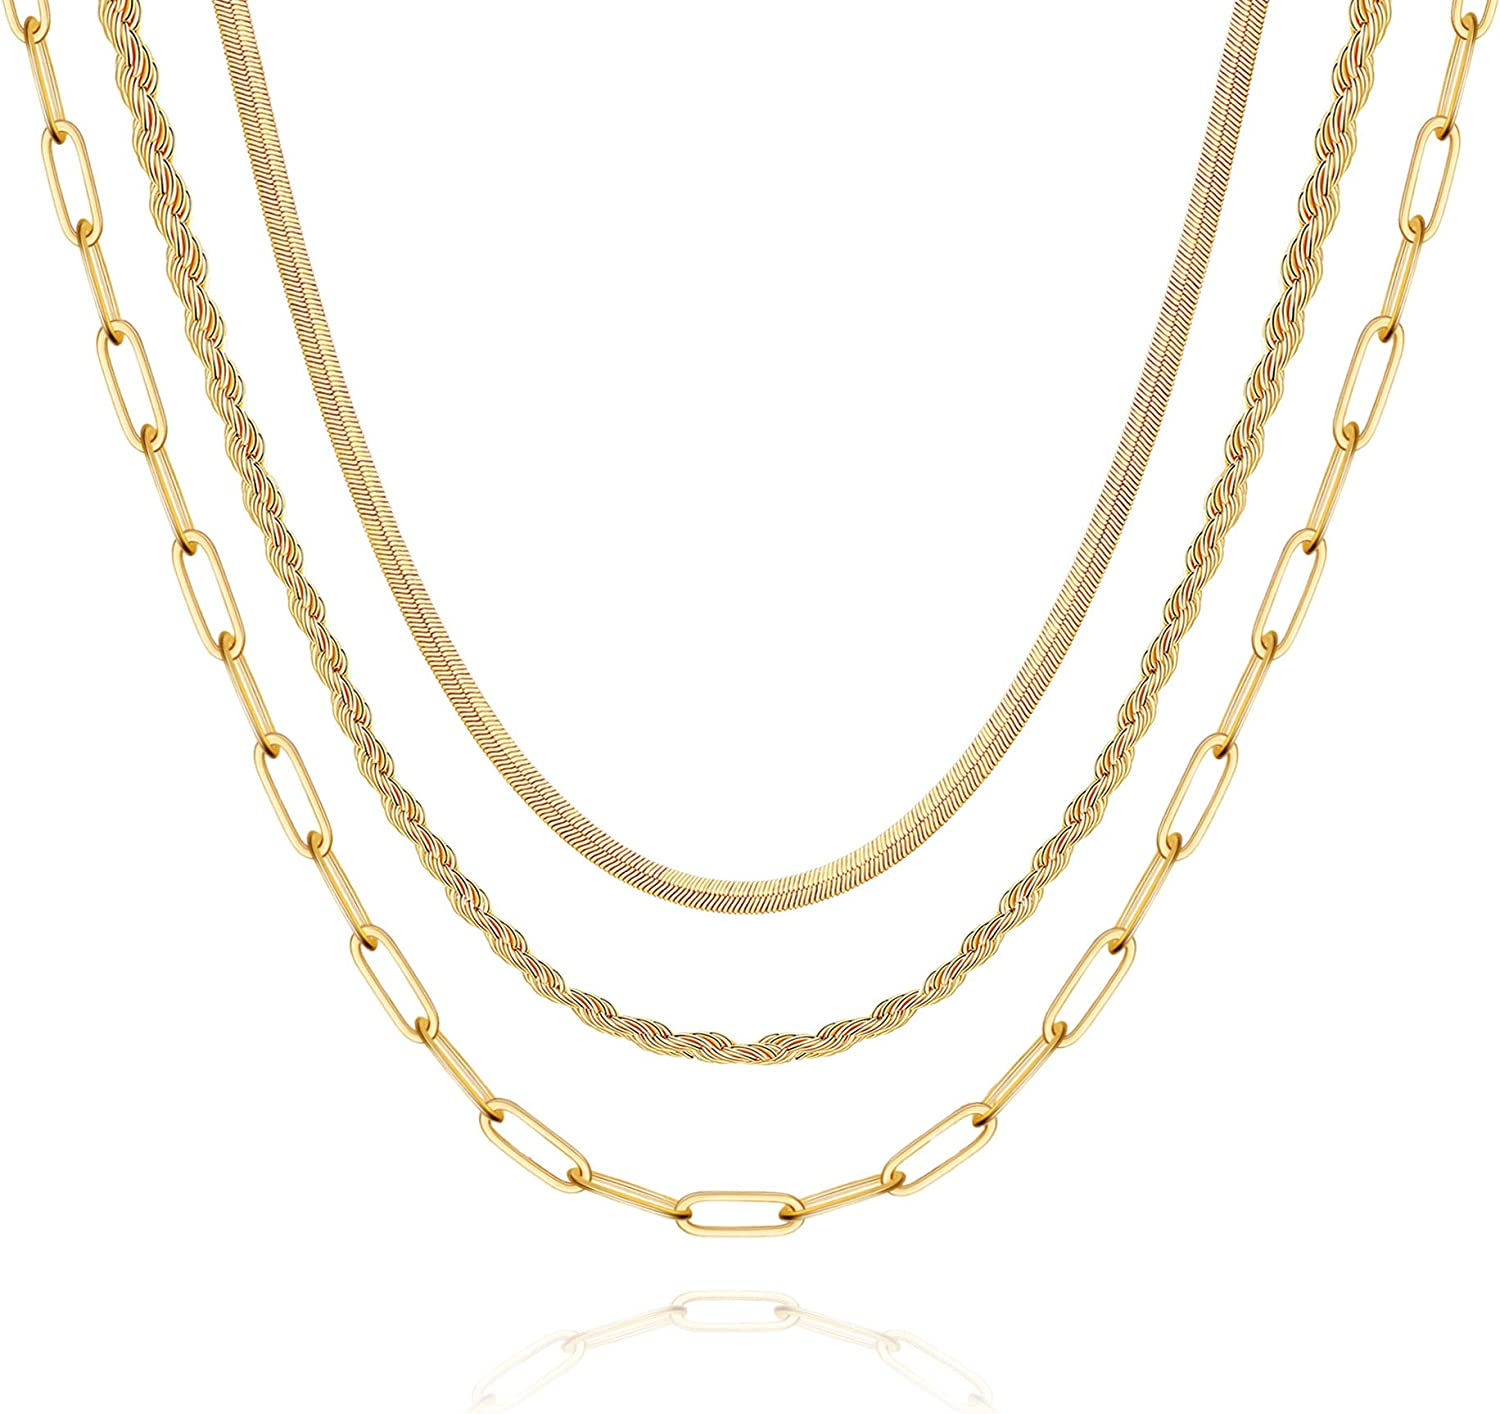 Hidepoo Gold Layered Necklaces for Women, 14K Gold Plated Dainty Coin Pendant Choker Necklace Herringbone Snake Necklace Paperclip Chain Layered Necklaces for Women Jewelry Gifts